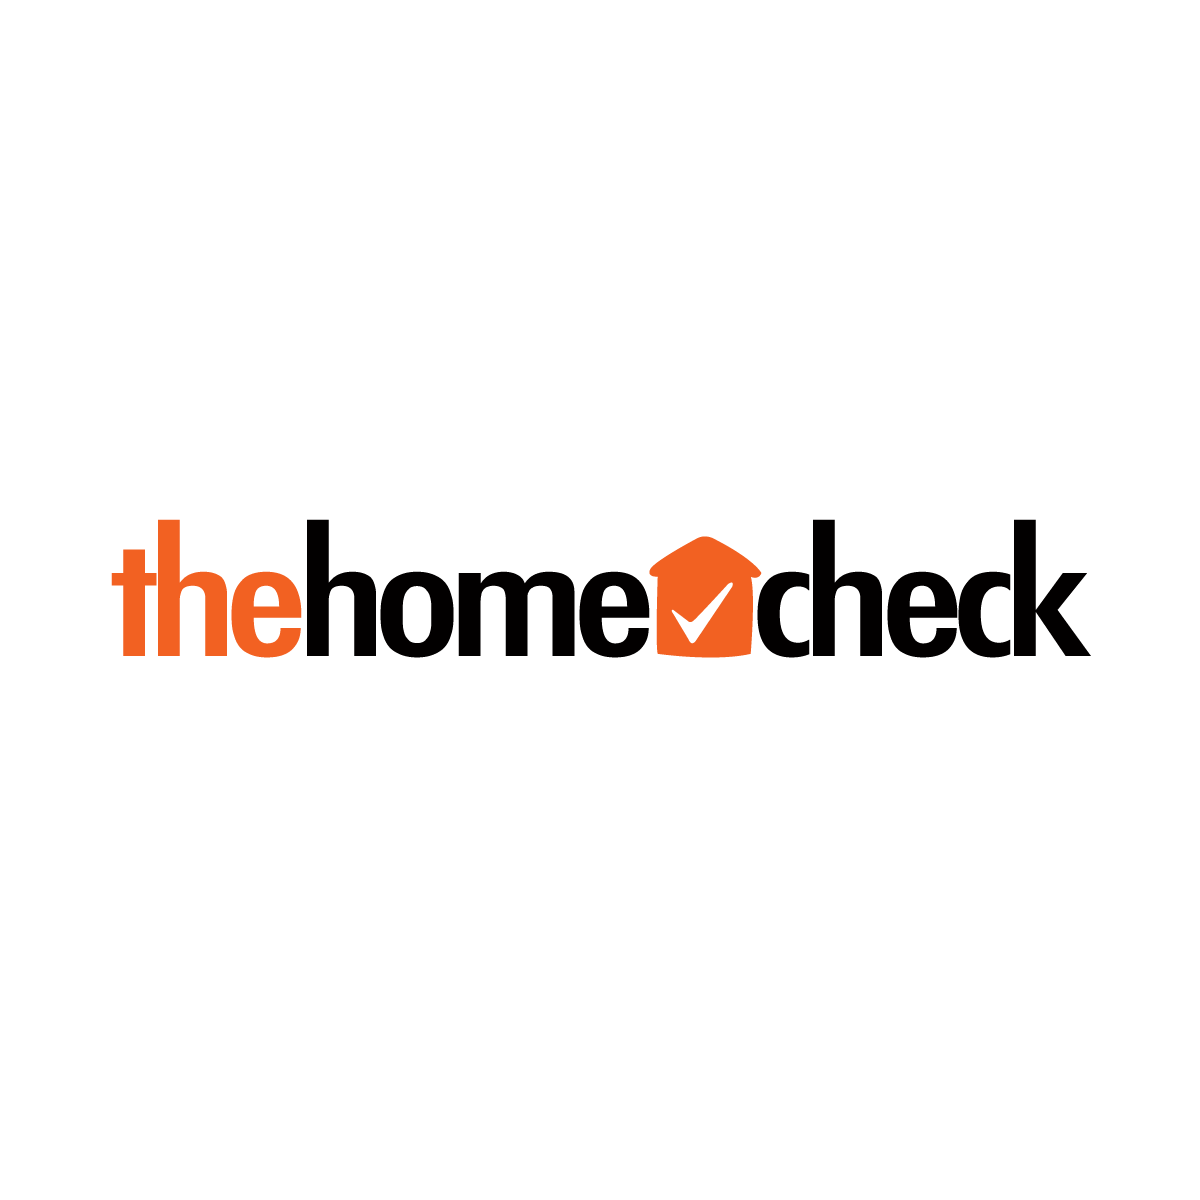 Home inspection and home care company ( logo concept for a Toronto Company)